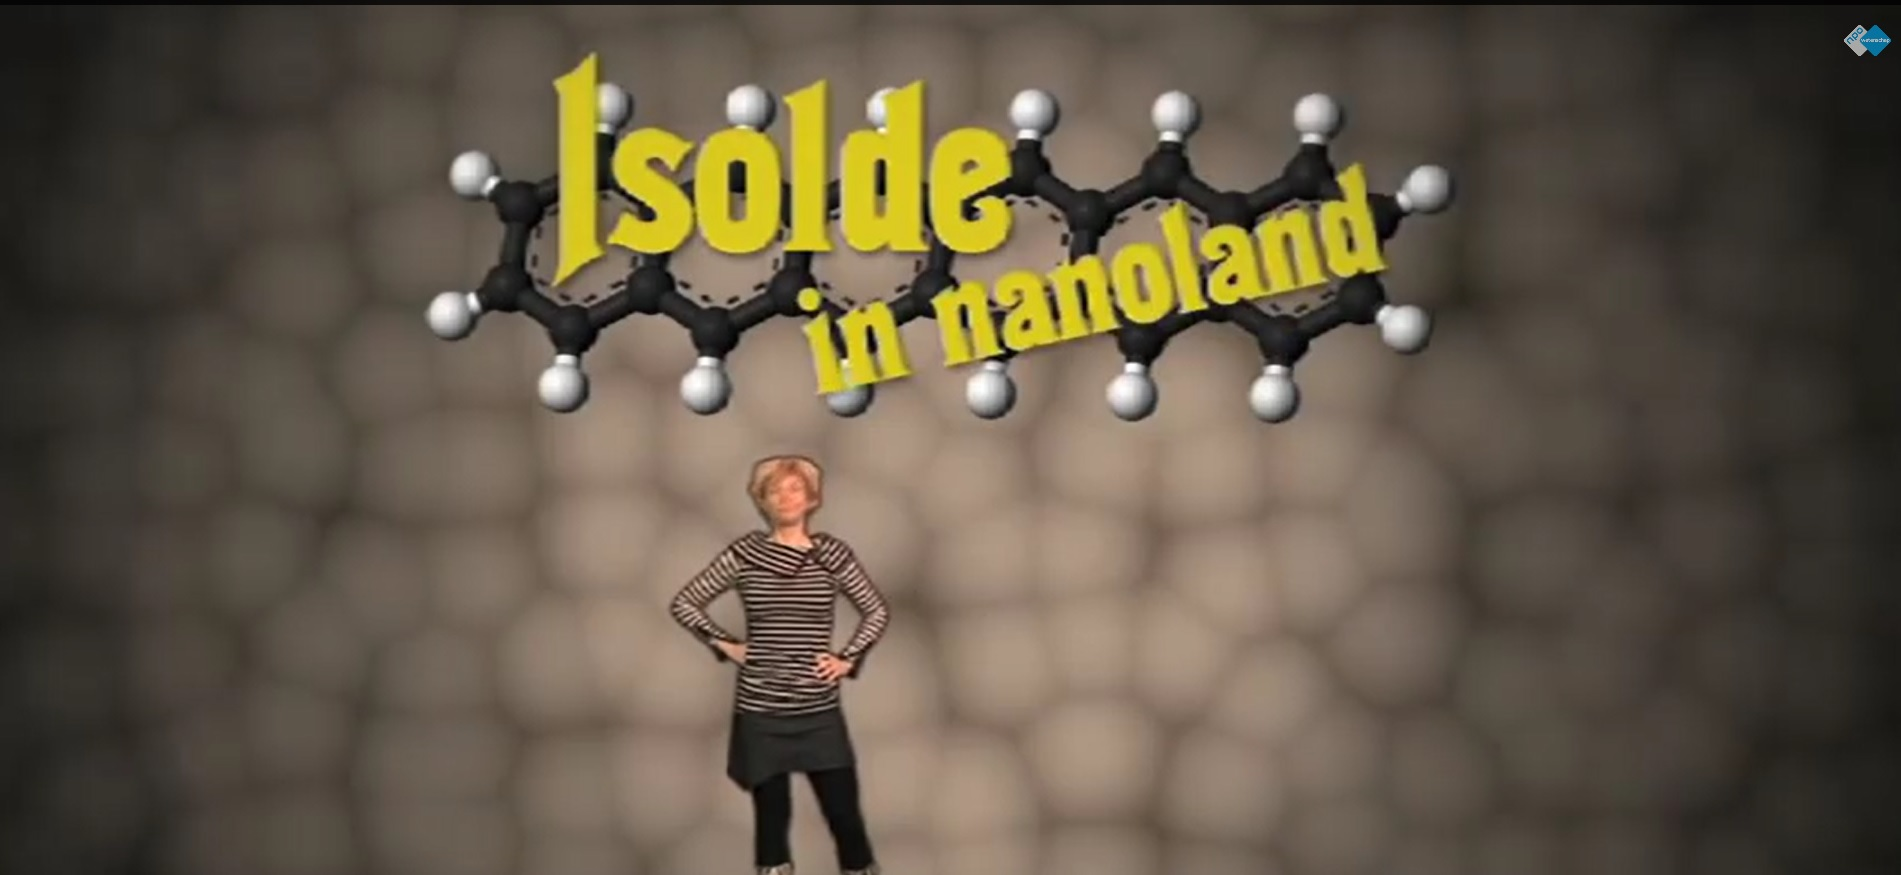 Isolde in Nanoland